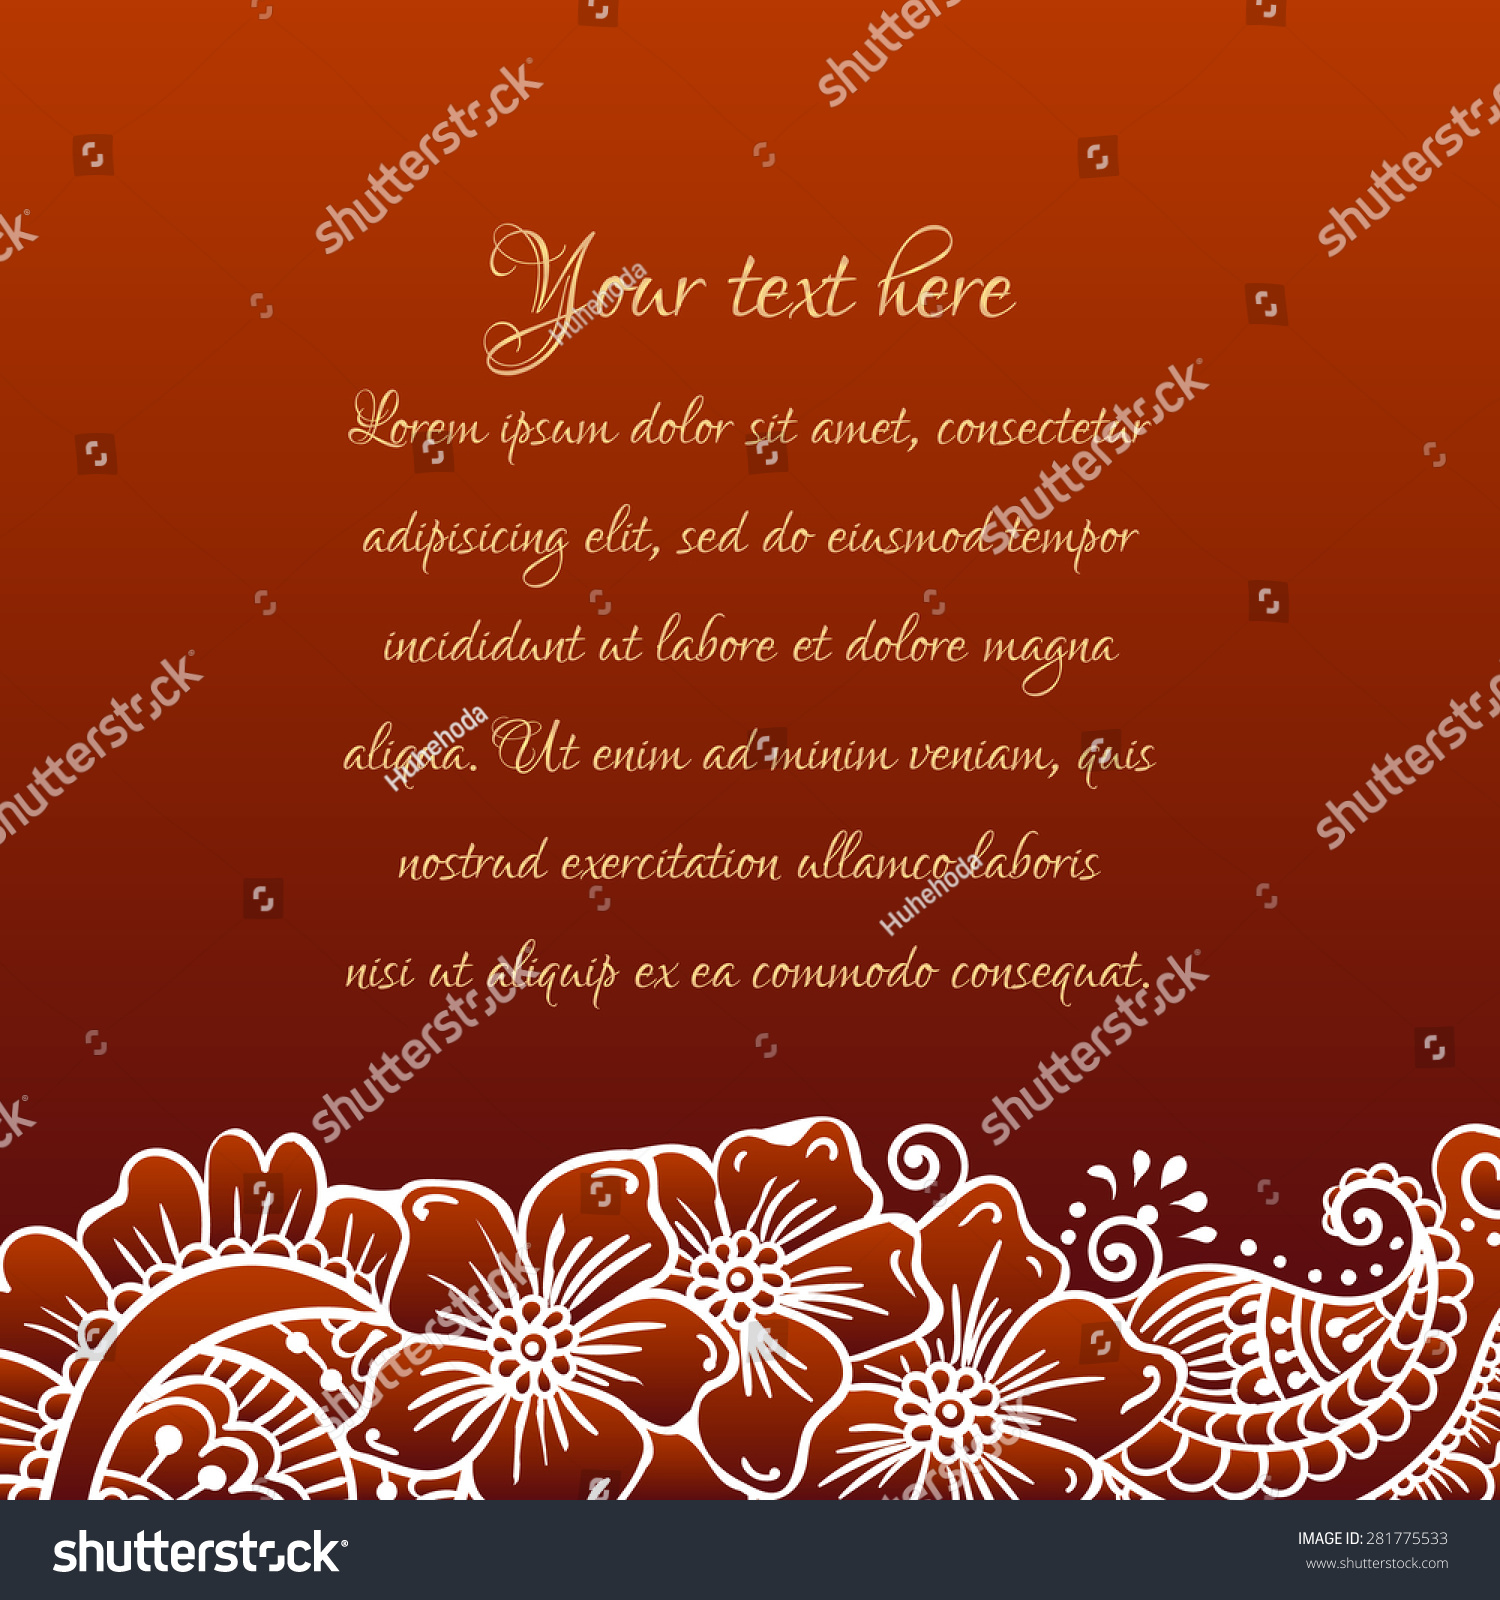 Floral Ornament Mehndi Henna Tattoo White Stock Vector (Royalty Free ...